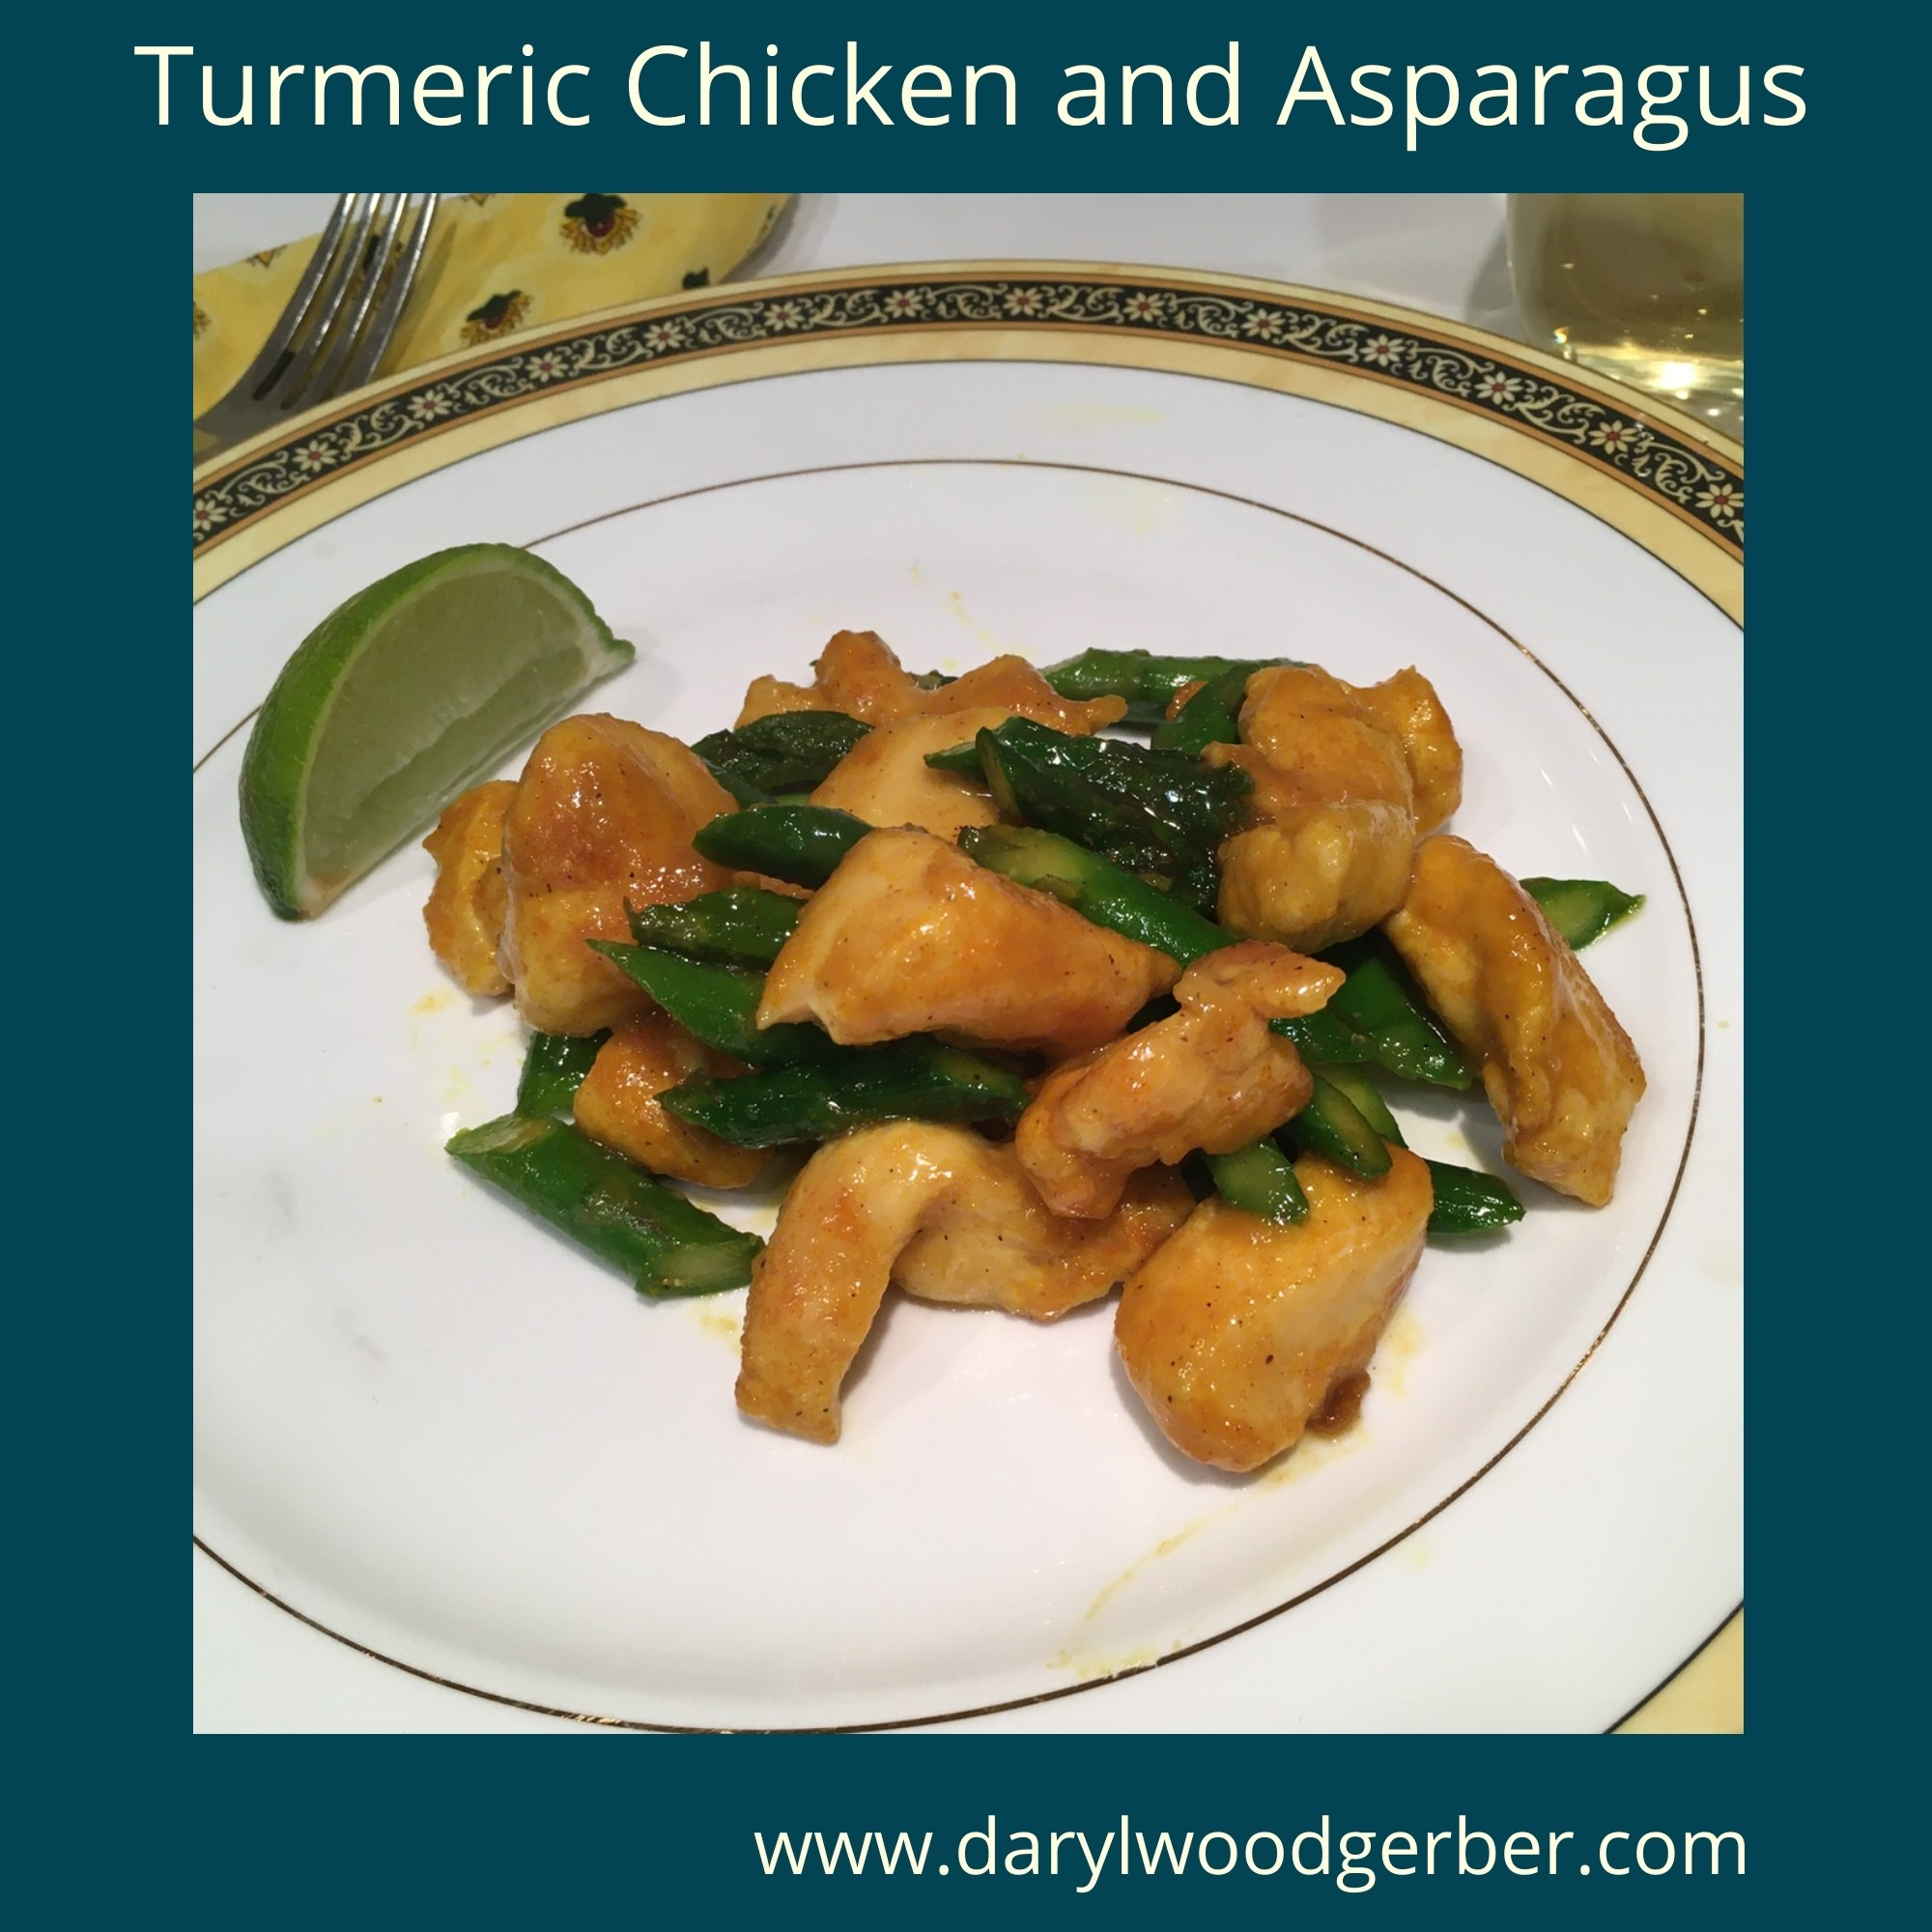 Mystery Lovers Kitchen Turmeric Chicken And Asparaus Recipe Author Darylwoodgerber